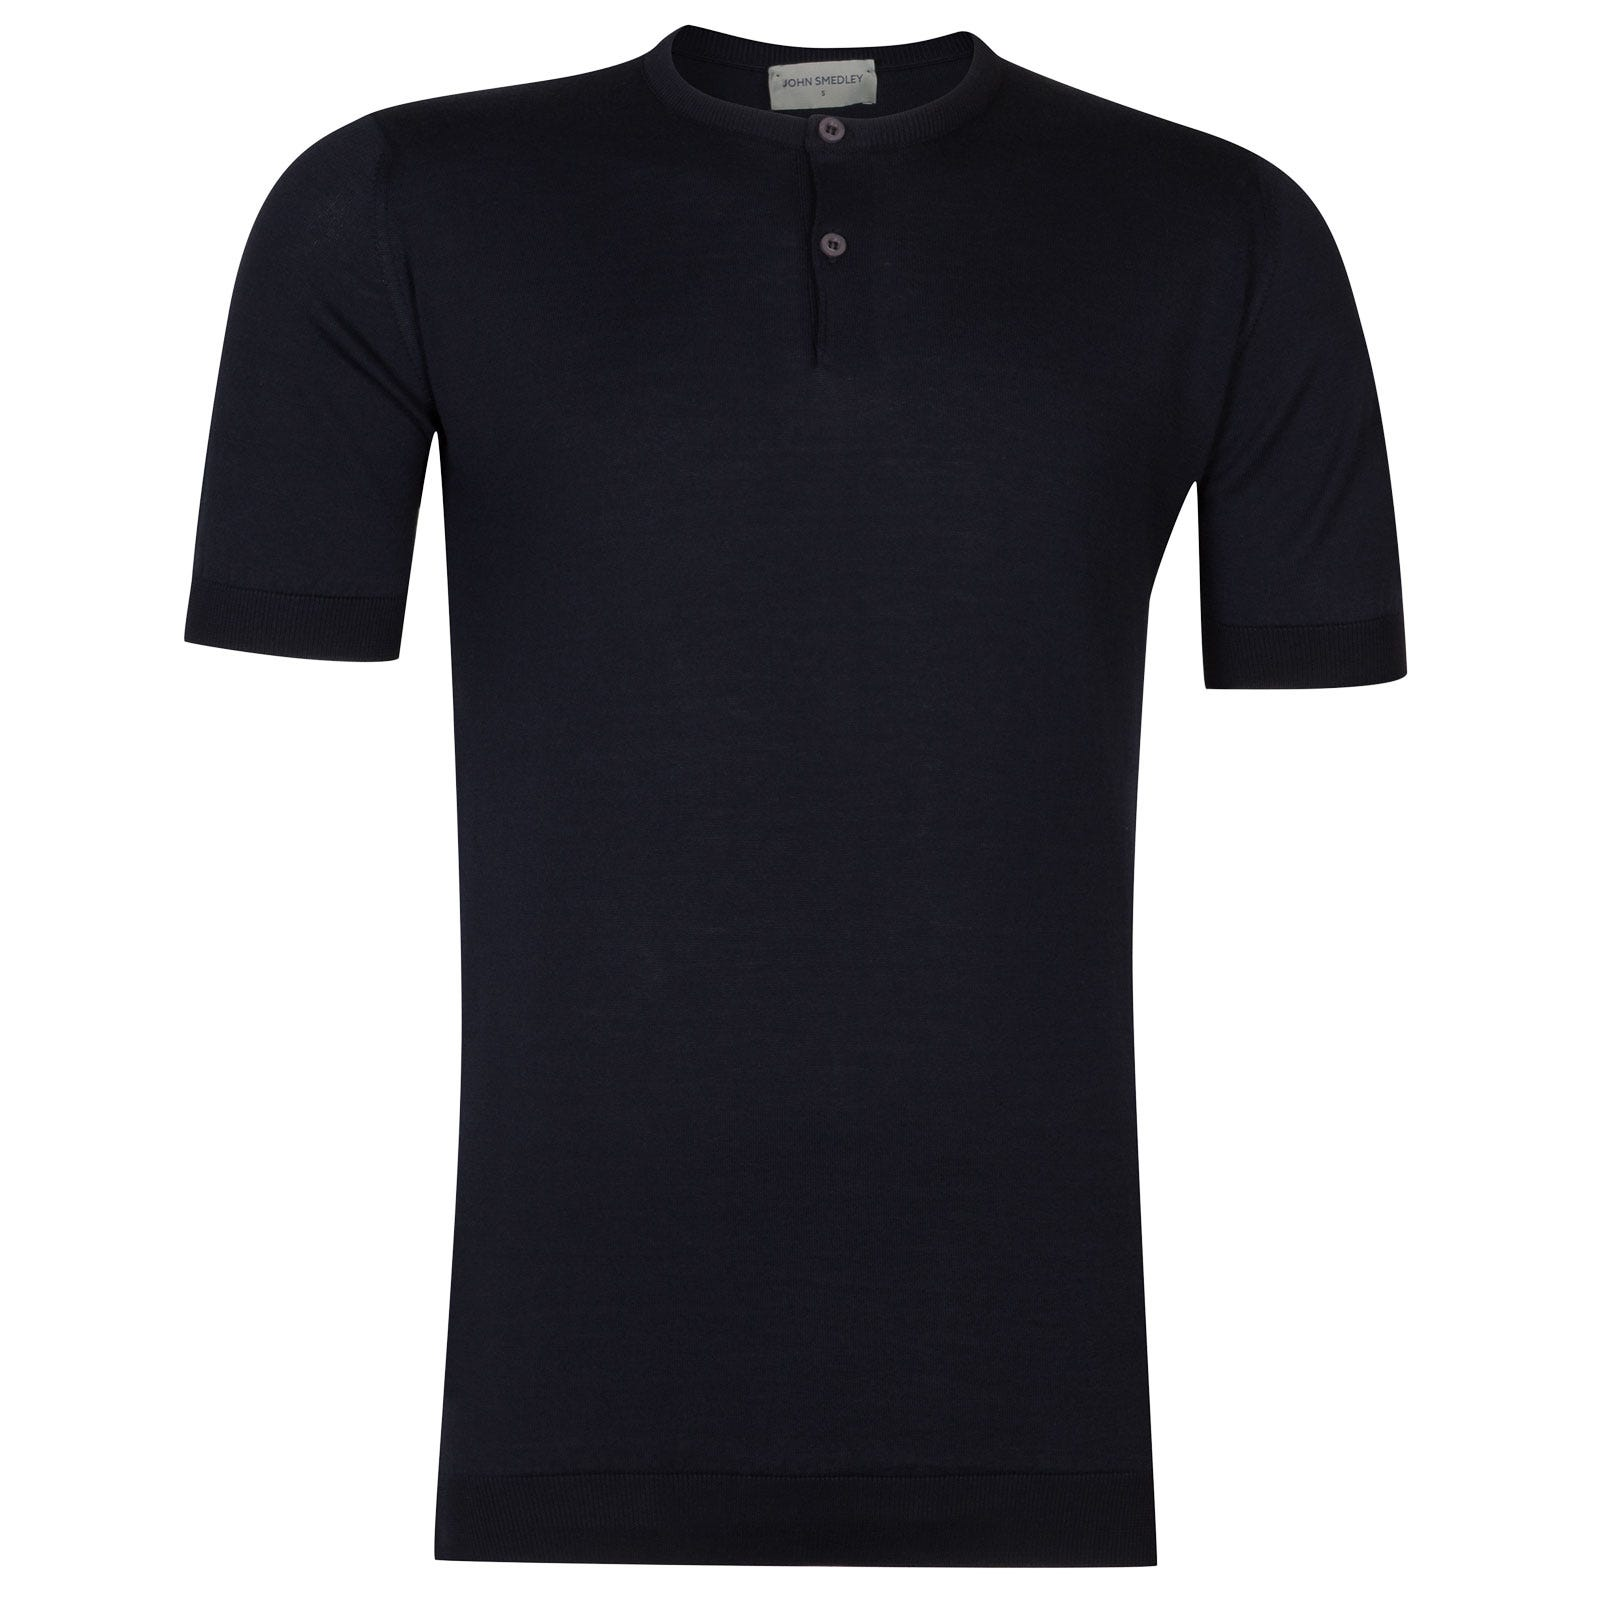 John Smedley Bennett Sea Island Cotton T-shirt in Navy-XL